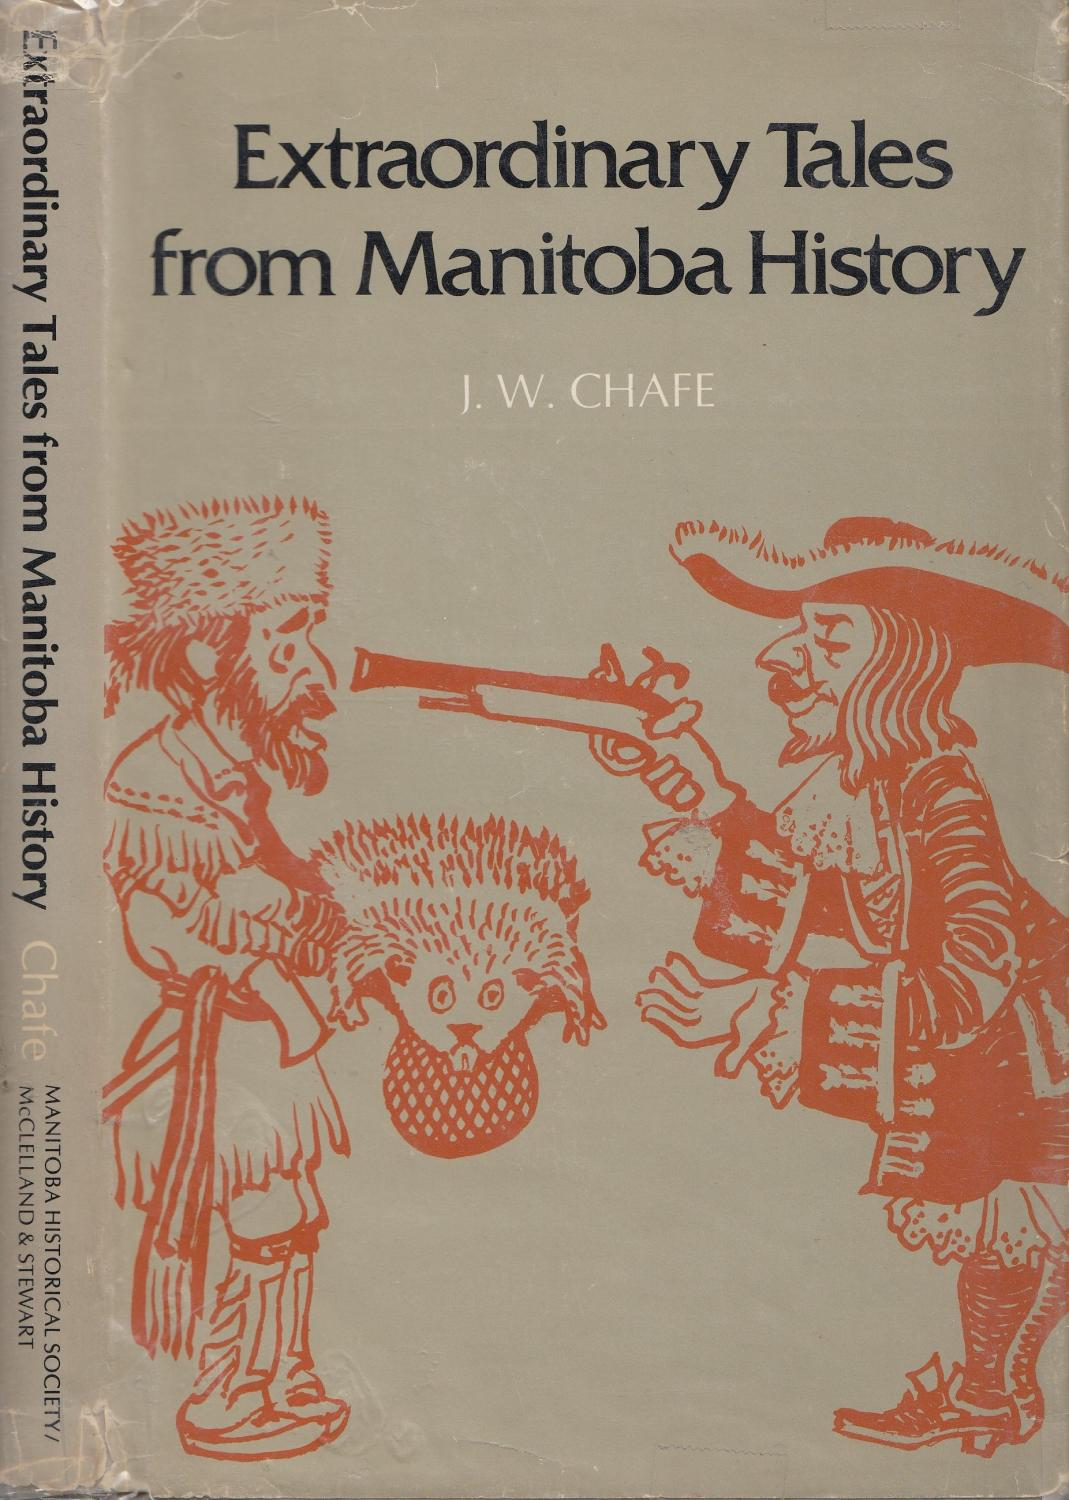 Extraordinary Tales From Manitoba History - Chafe, J[ames] W[arren]; Manitoba Historical Society